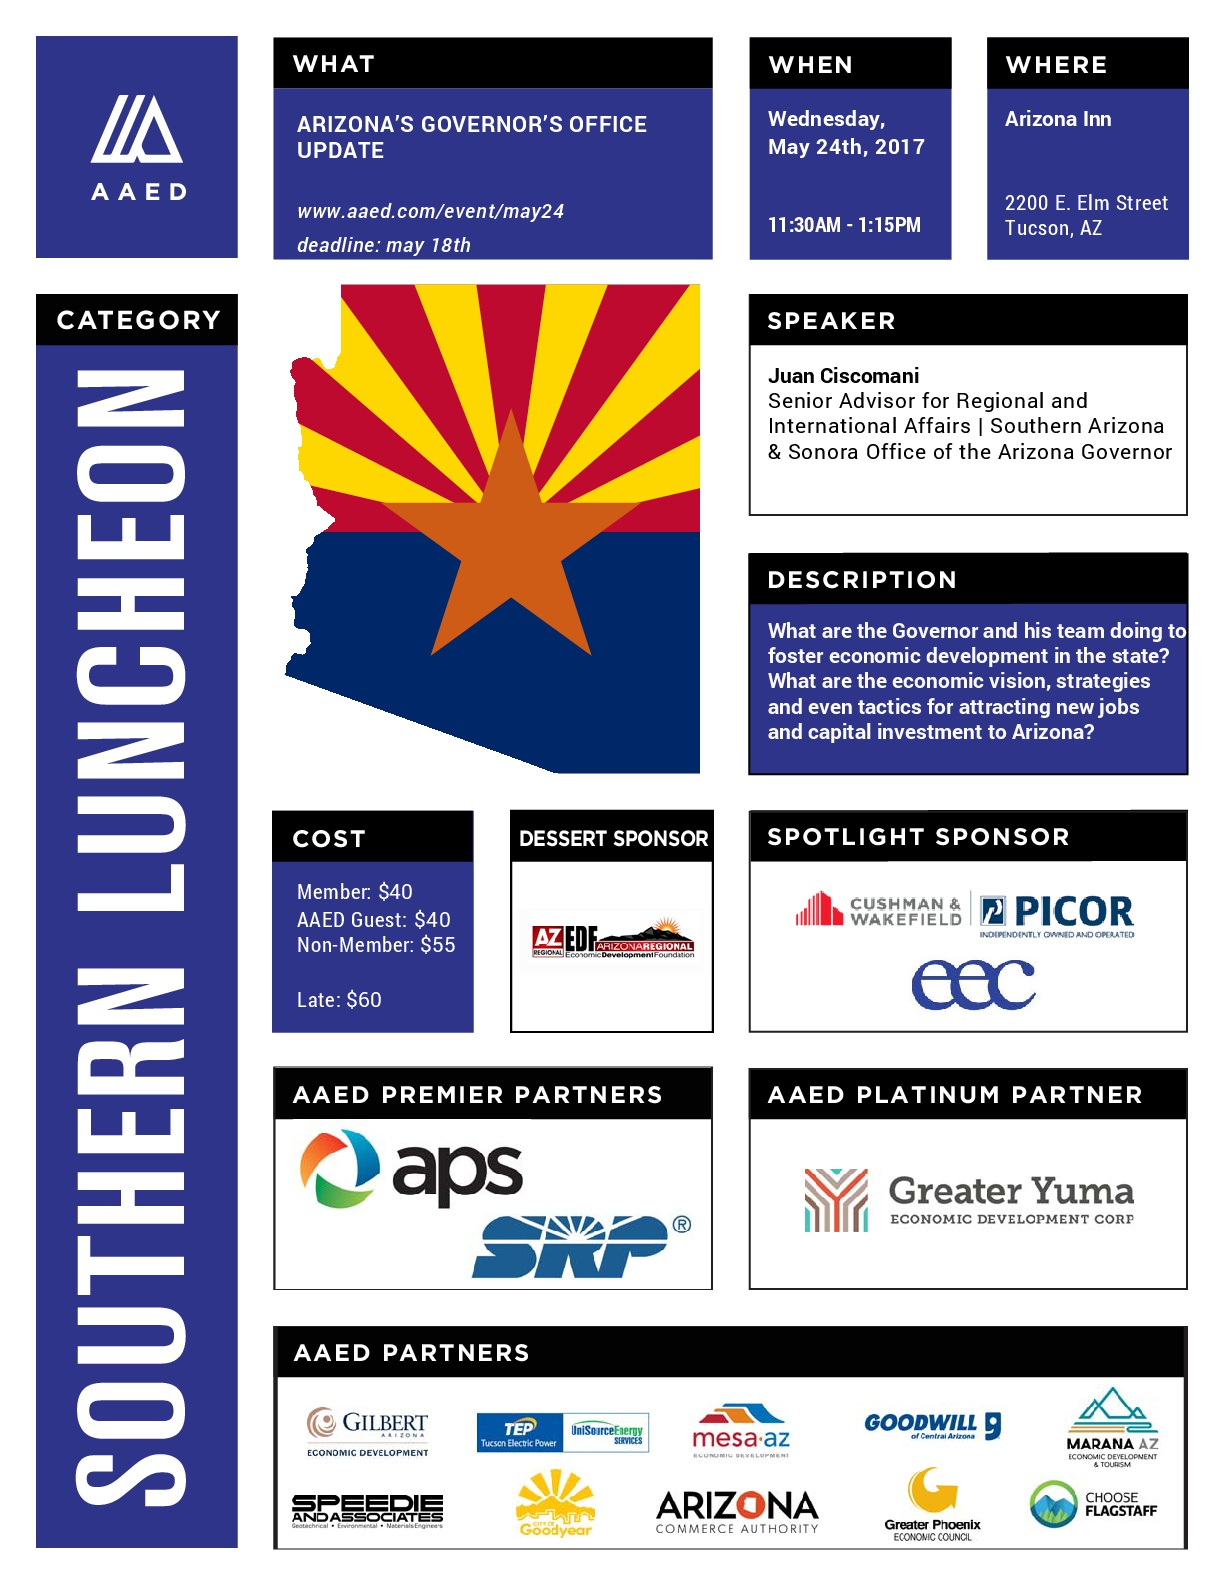 AAED Southern Luncheon, Arizona Governor's Office Update @ Arizona Inn | Tucson | Arizona | United States